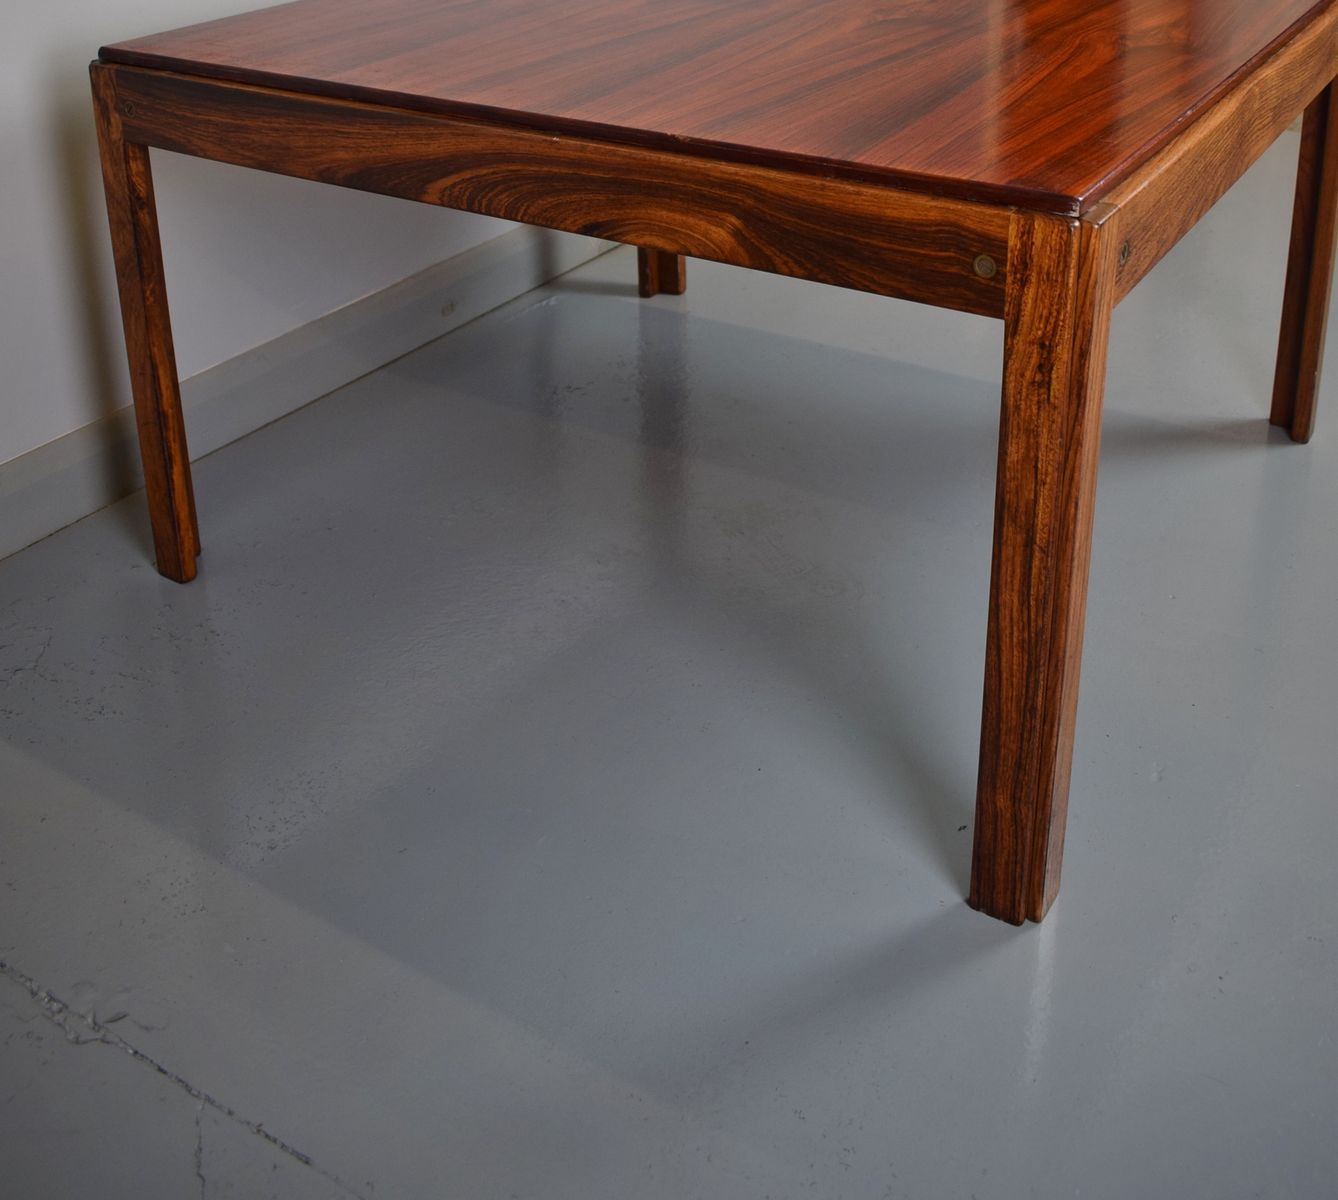 Danish Rosewood Coffee Table By Illum Wikkelso For Silkeborg 1960s 7 994 00 Price Per Piece